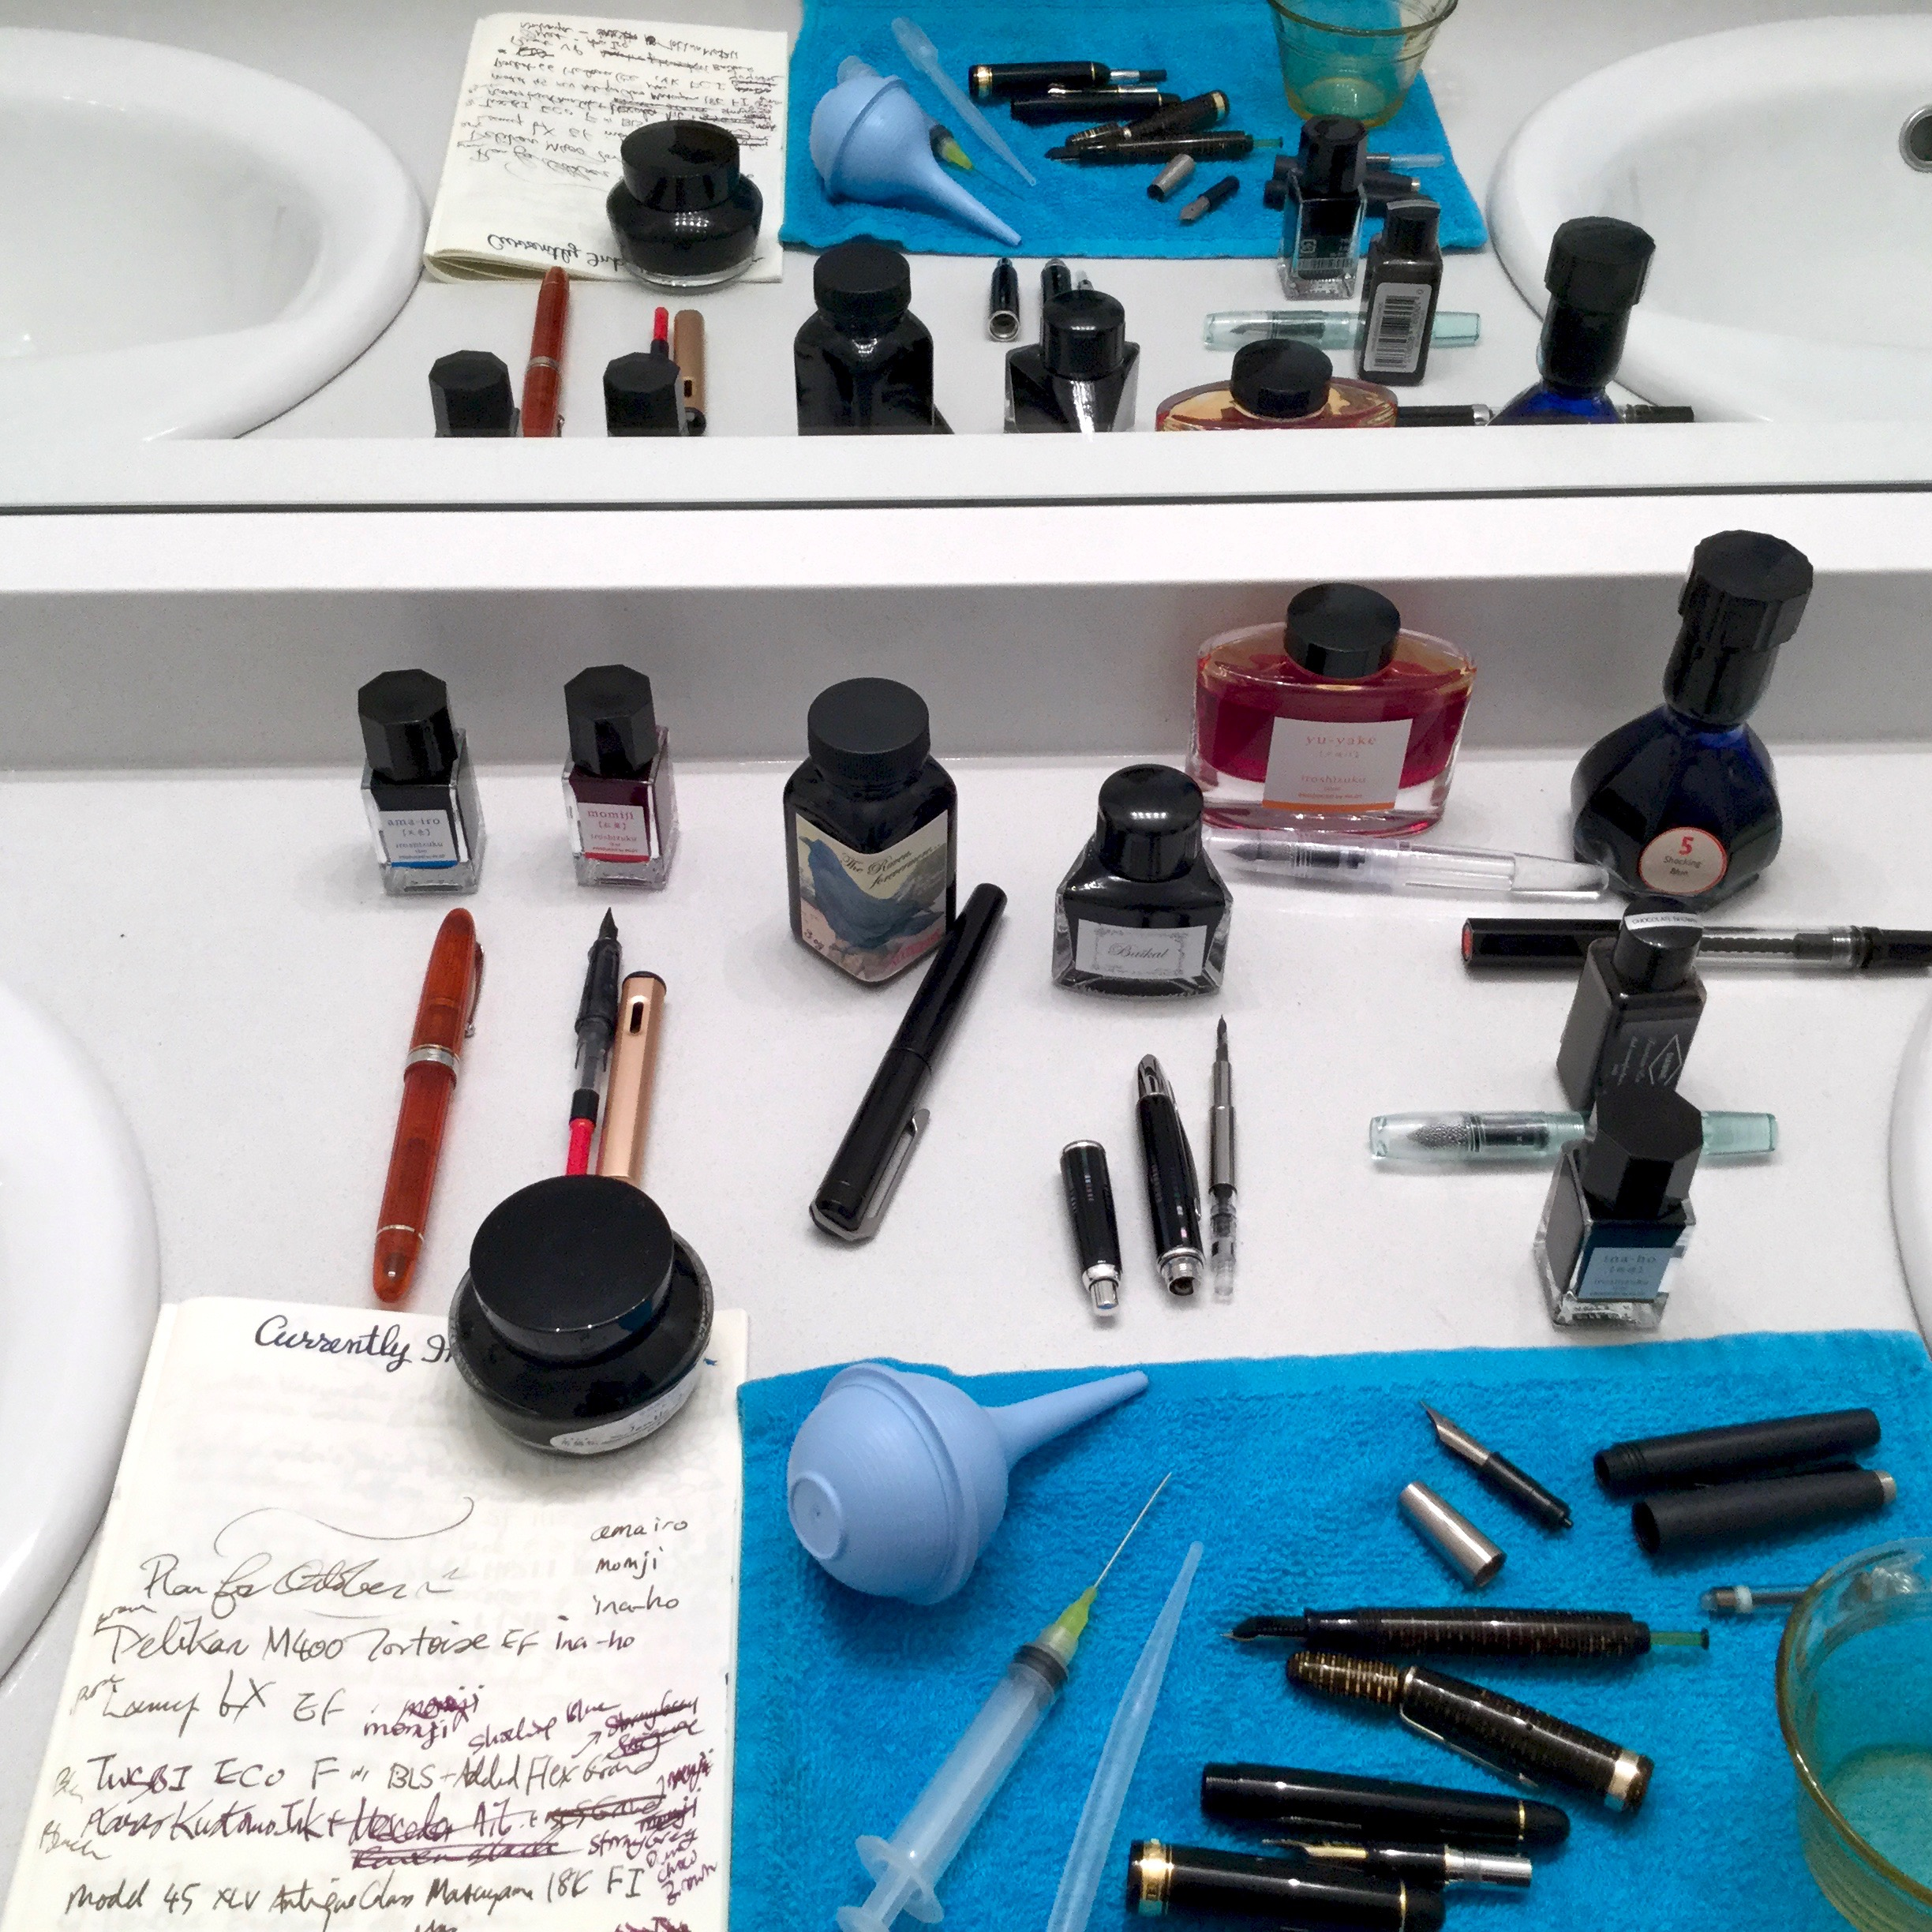 In foreground & mirror reflection, on top of blue towel: bulb syringe, blunt tip needle, cleaned and sorted pen parts